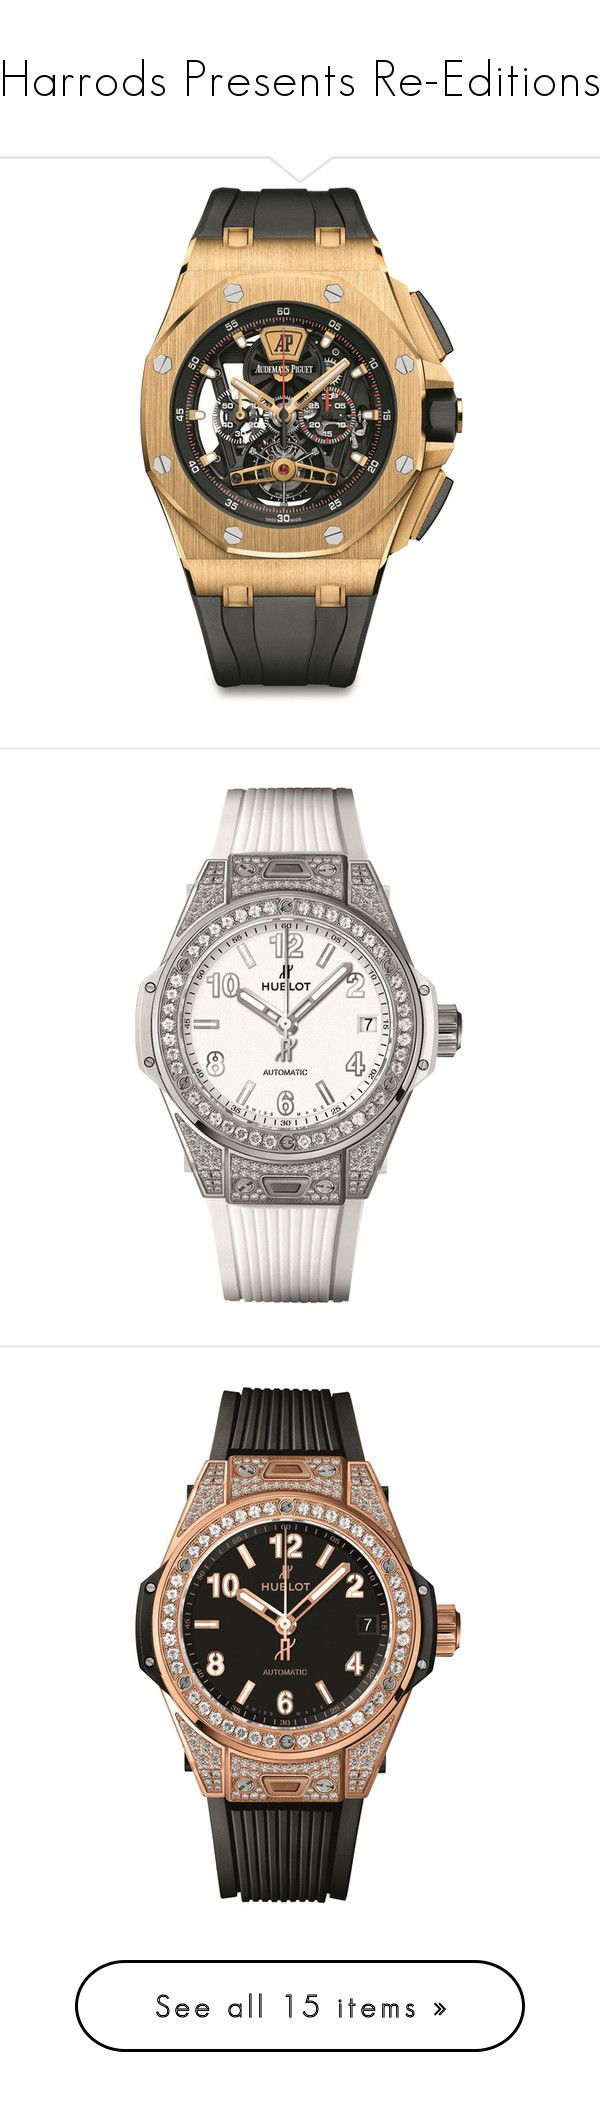 """""""Harrods Presents Re-Editions"""" by harrods ❤ liked on Polyvore featuring jewelry, watches, chronograph watches, chronograph wrist watch, dial watches, chronos watch, audemars piguet watches, hublot watches, white faced watches and pave diamond jewelry"""